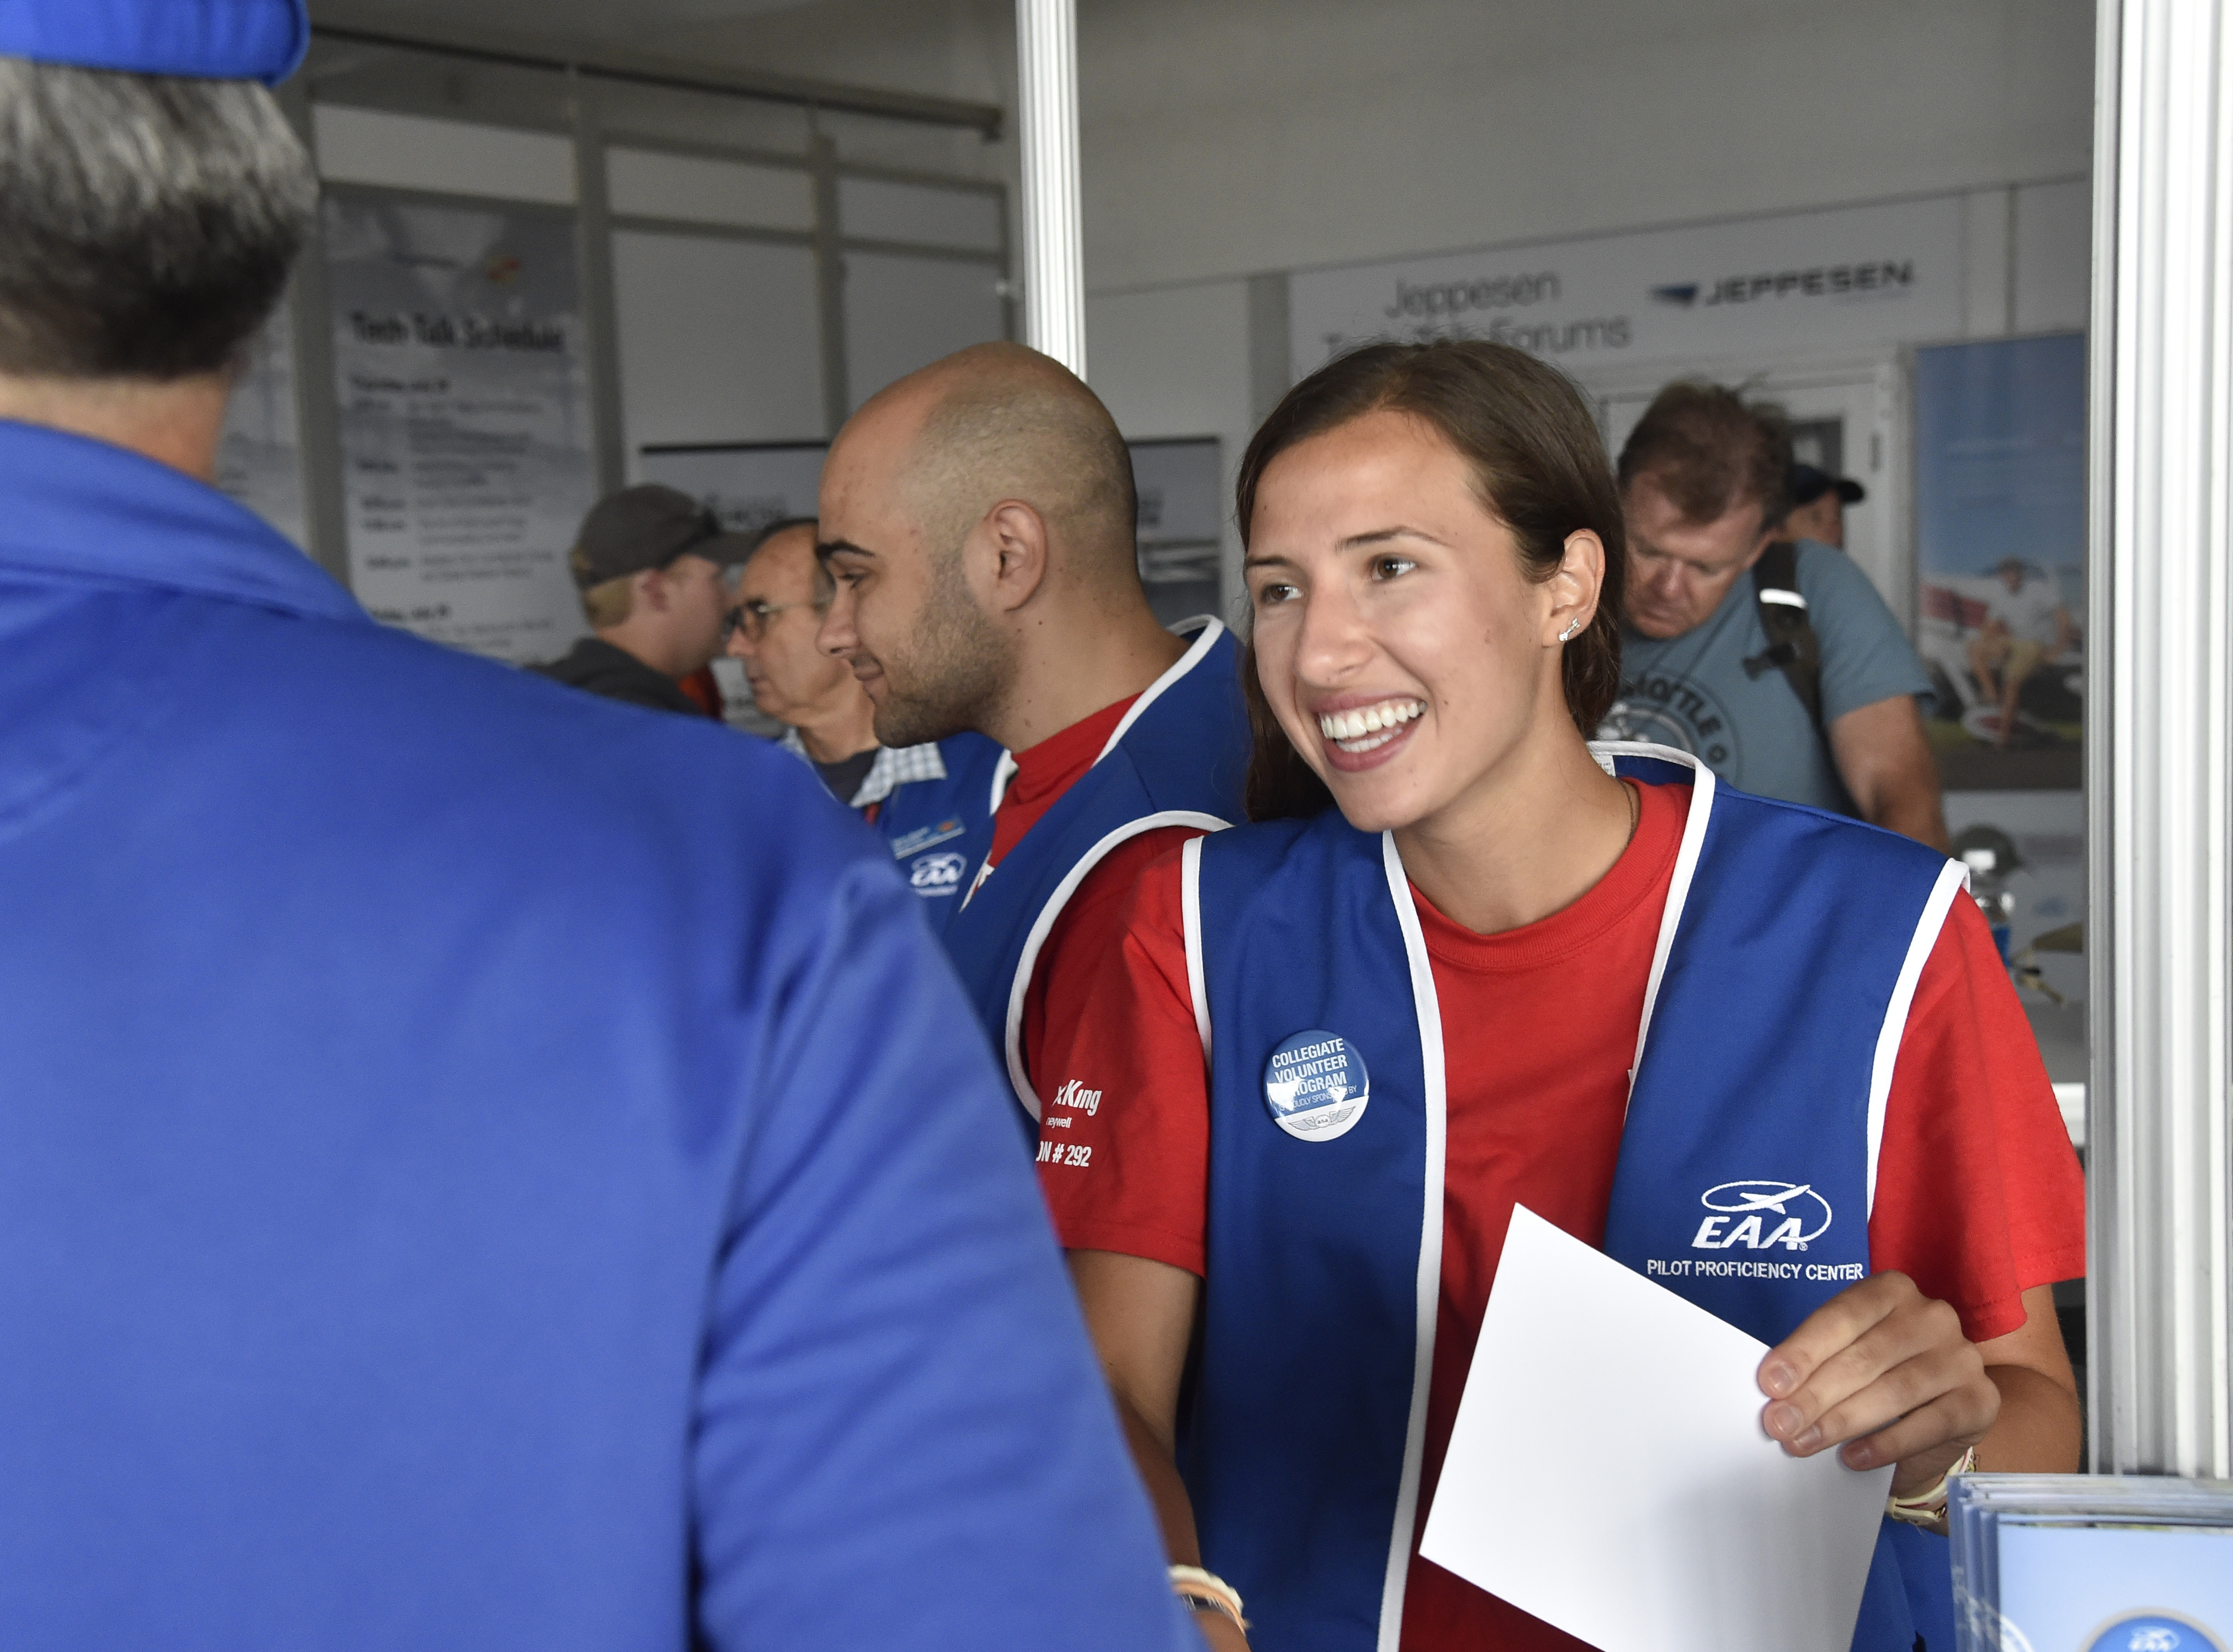 Private pilot Christine Oksas helps EAA AirVenture attendees at the Pilot Proficiency Center in Oshkosh July 29. Photo by David Tulis.